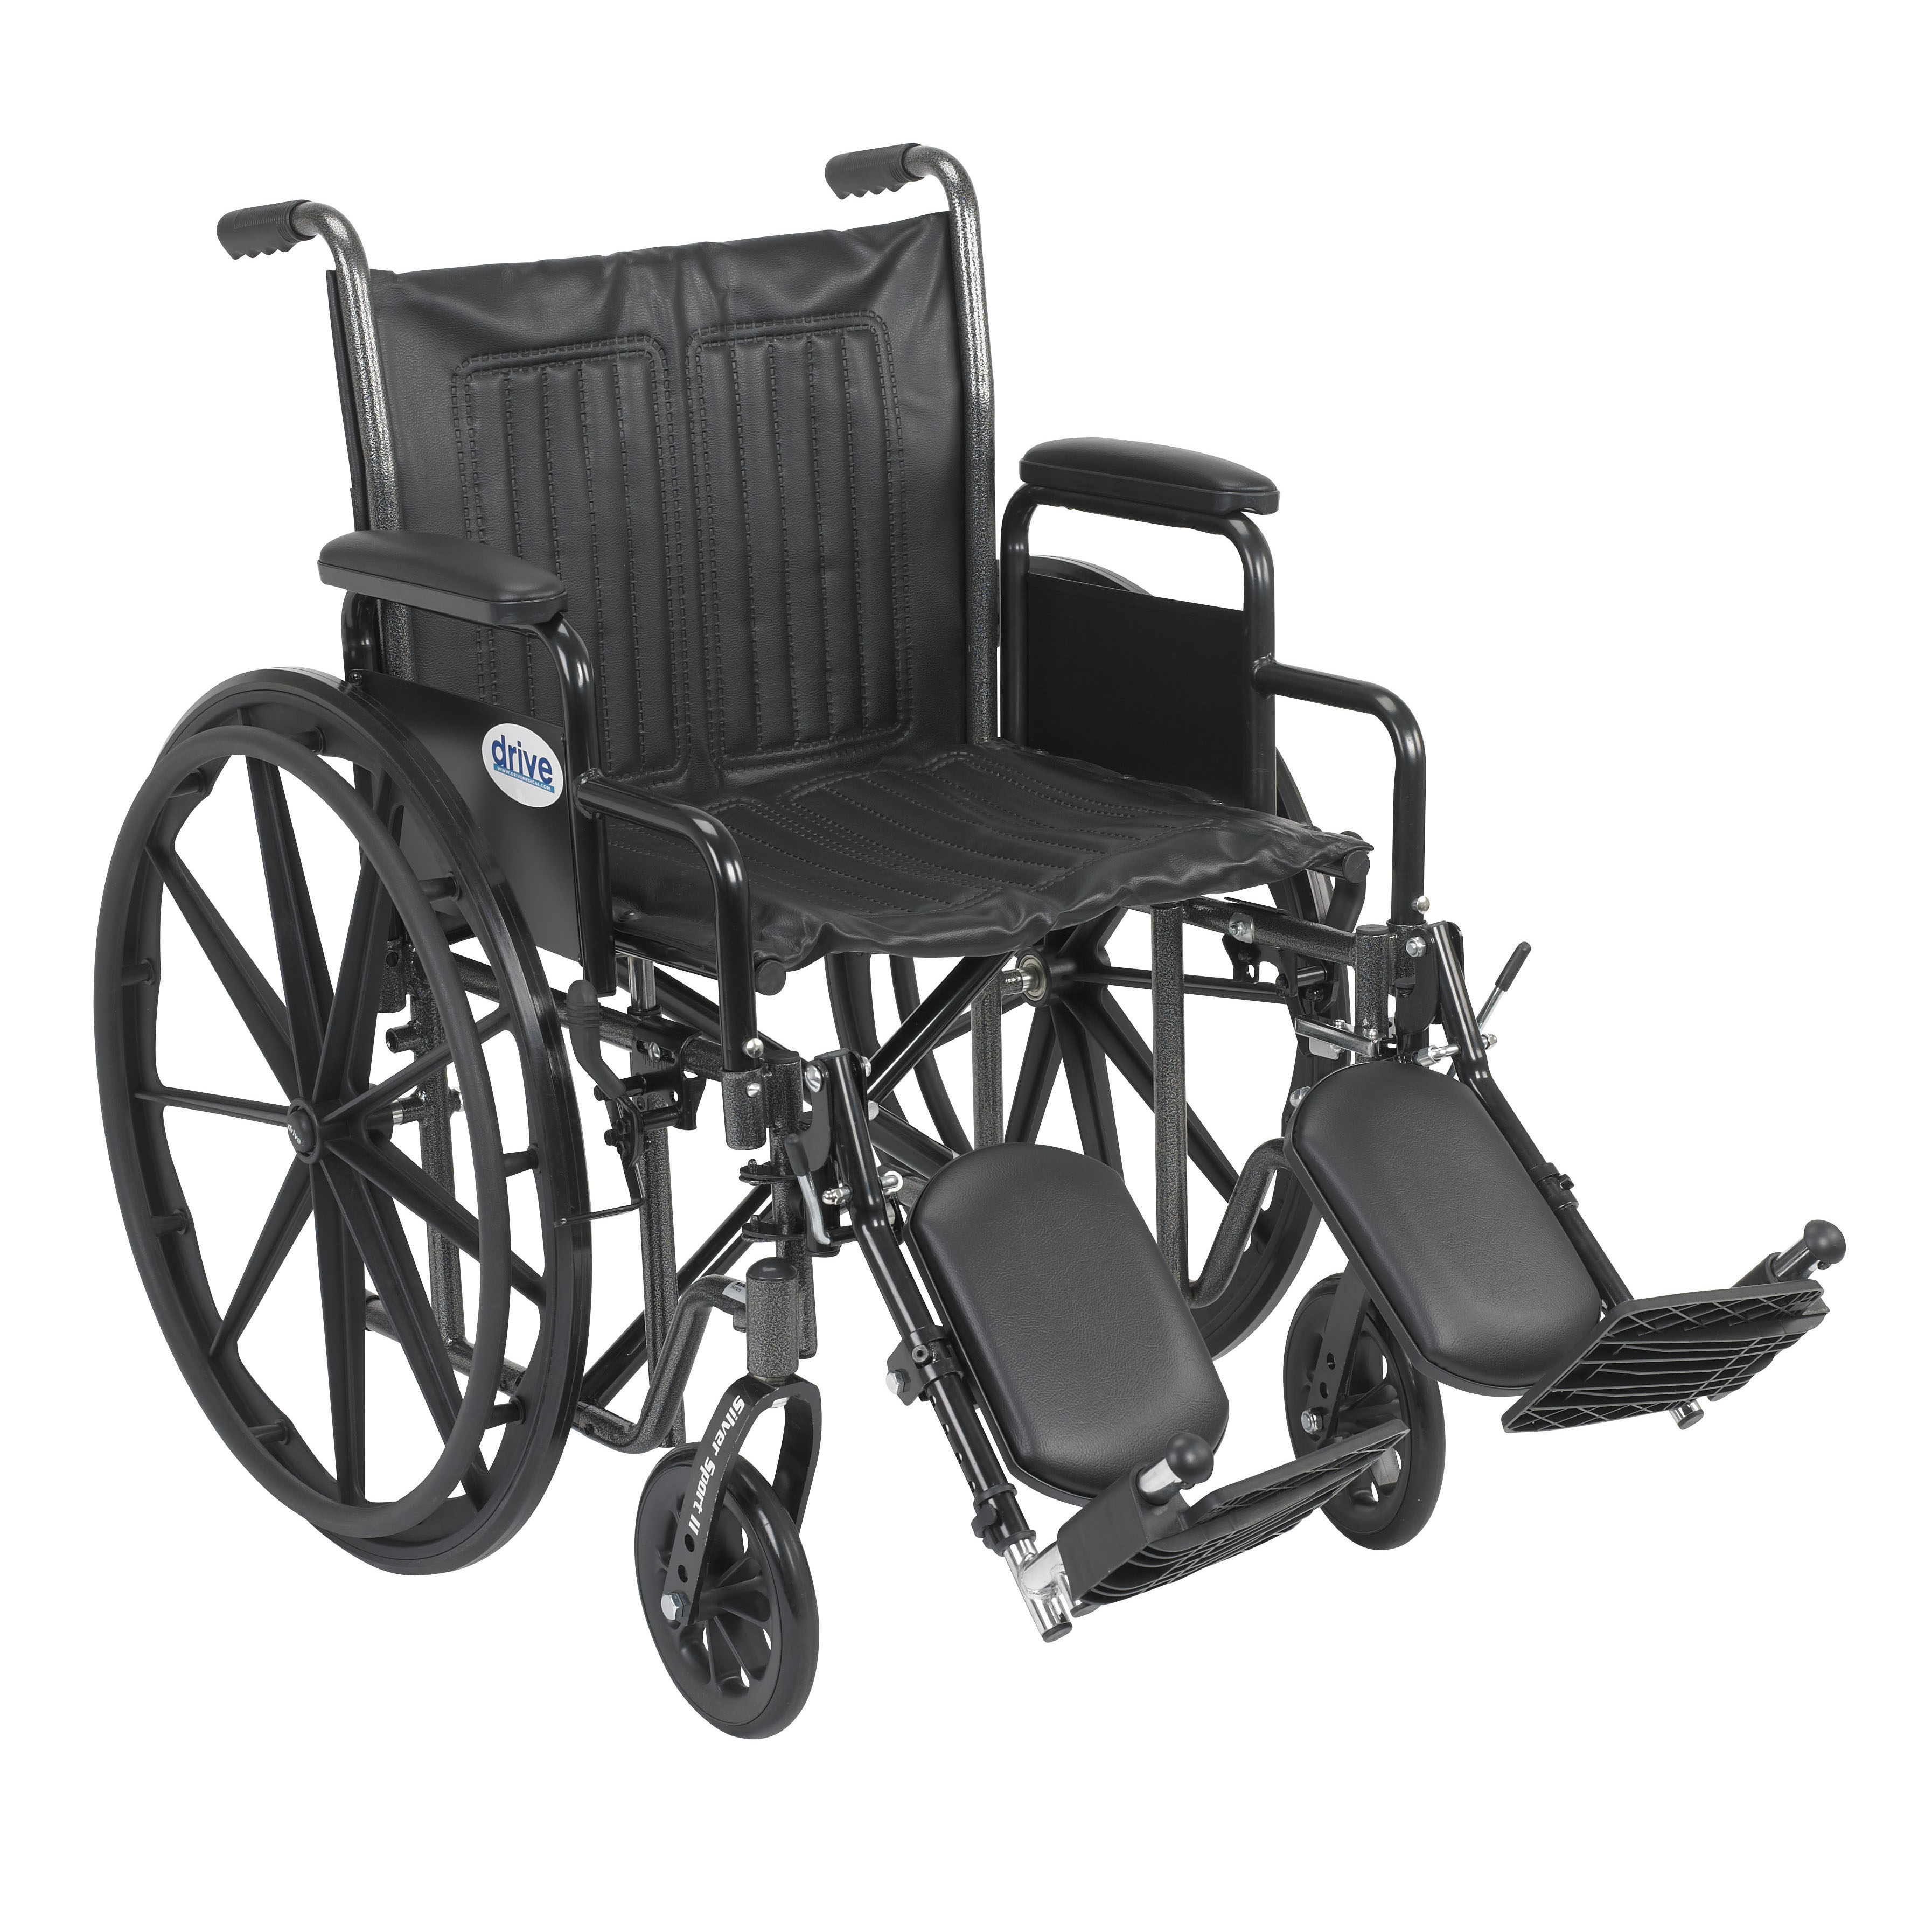 Drive Medical Silver Sport 2 Wheelchair, Detachable Desk Arms, Elevating Leg Rests